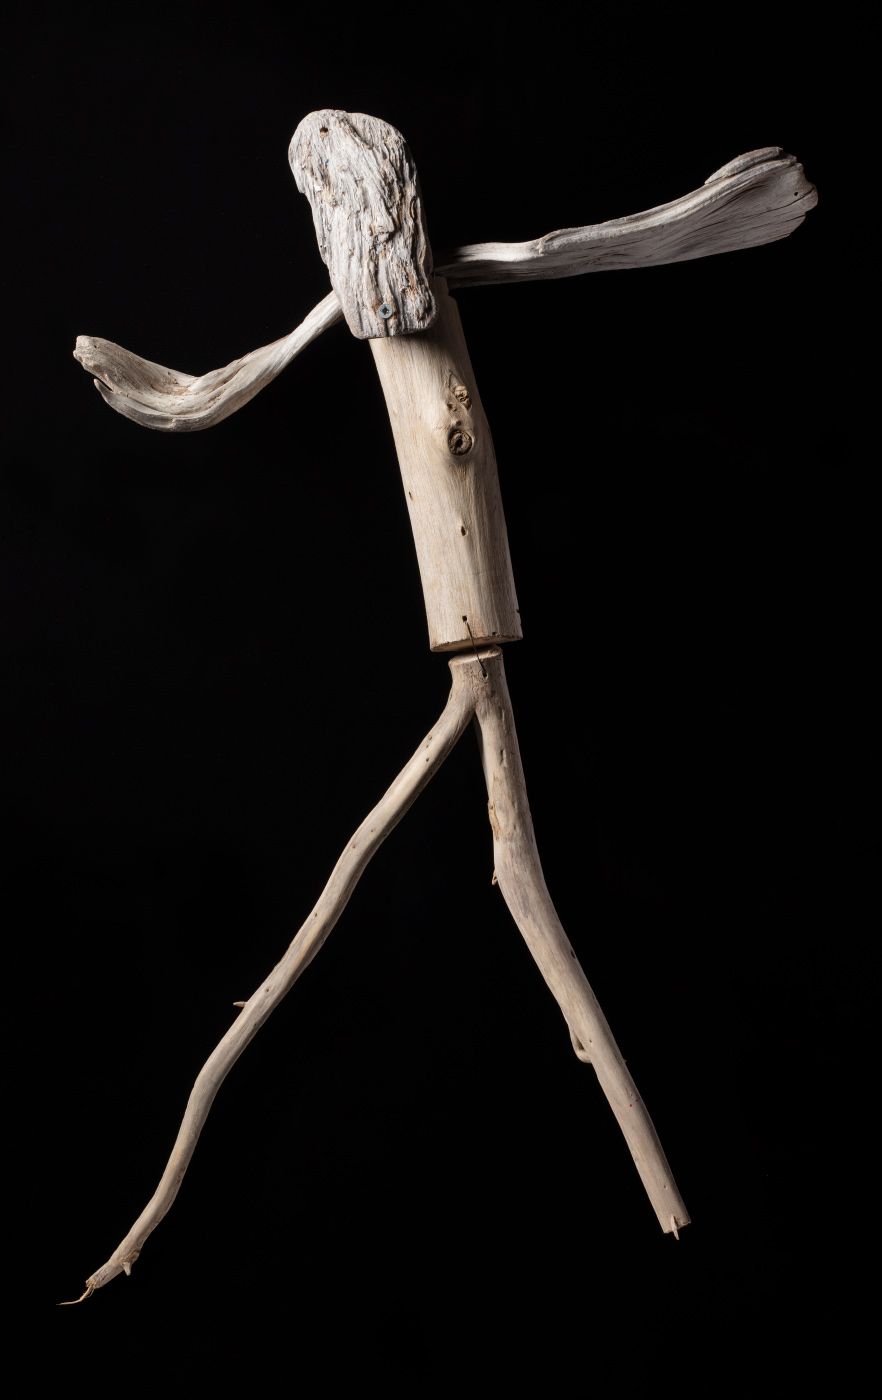 A figurative artwork made from driftwood, galvanised screws and copper wire. - click to view larger image